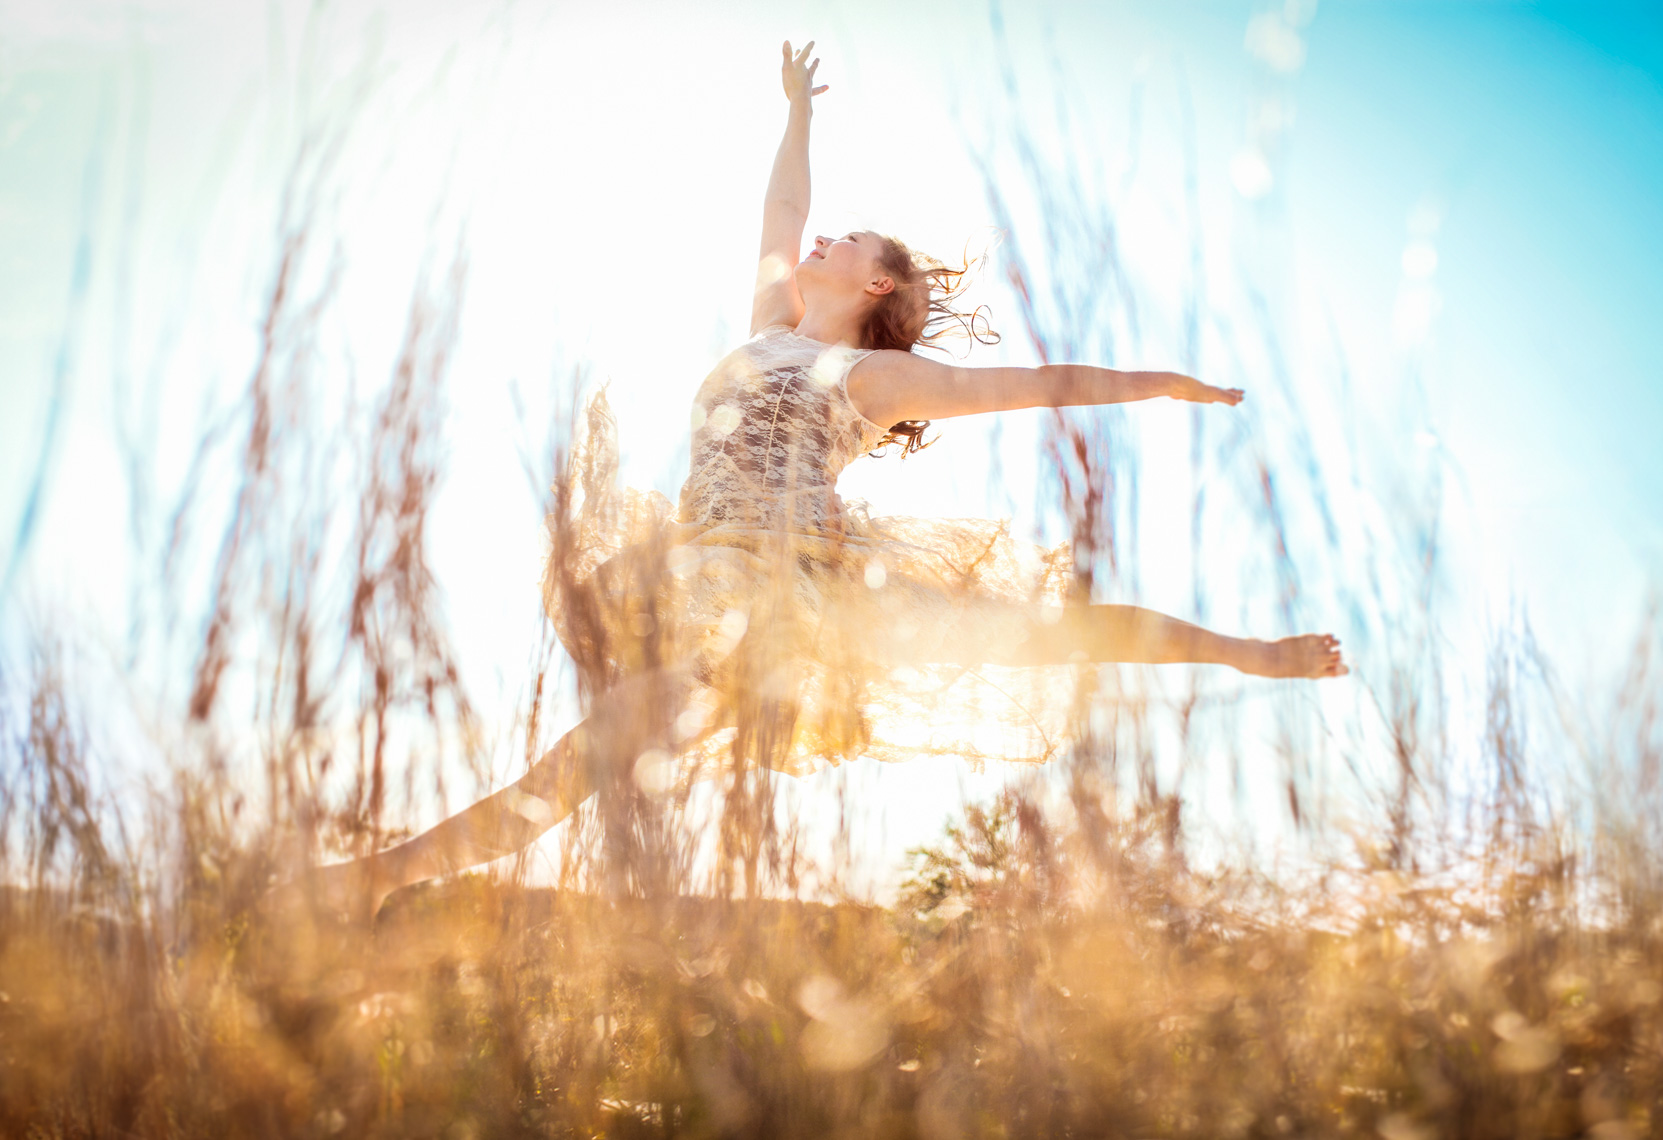 Dancer leaping  in nature | Visual Storytelling Photographer